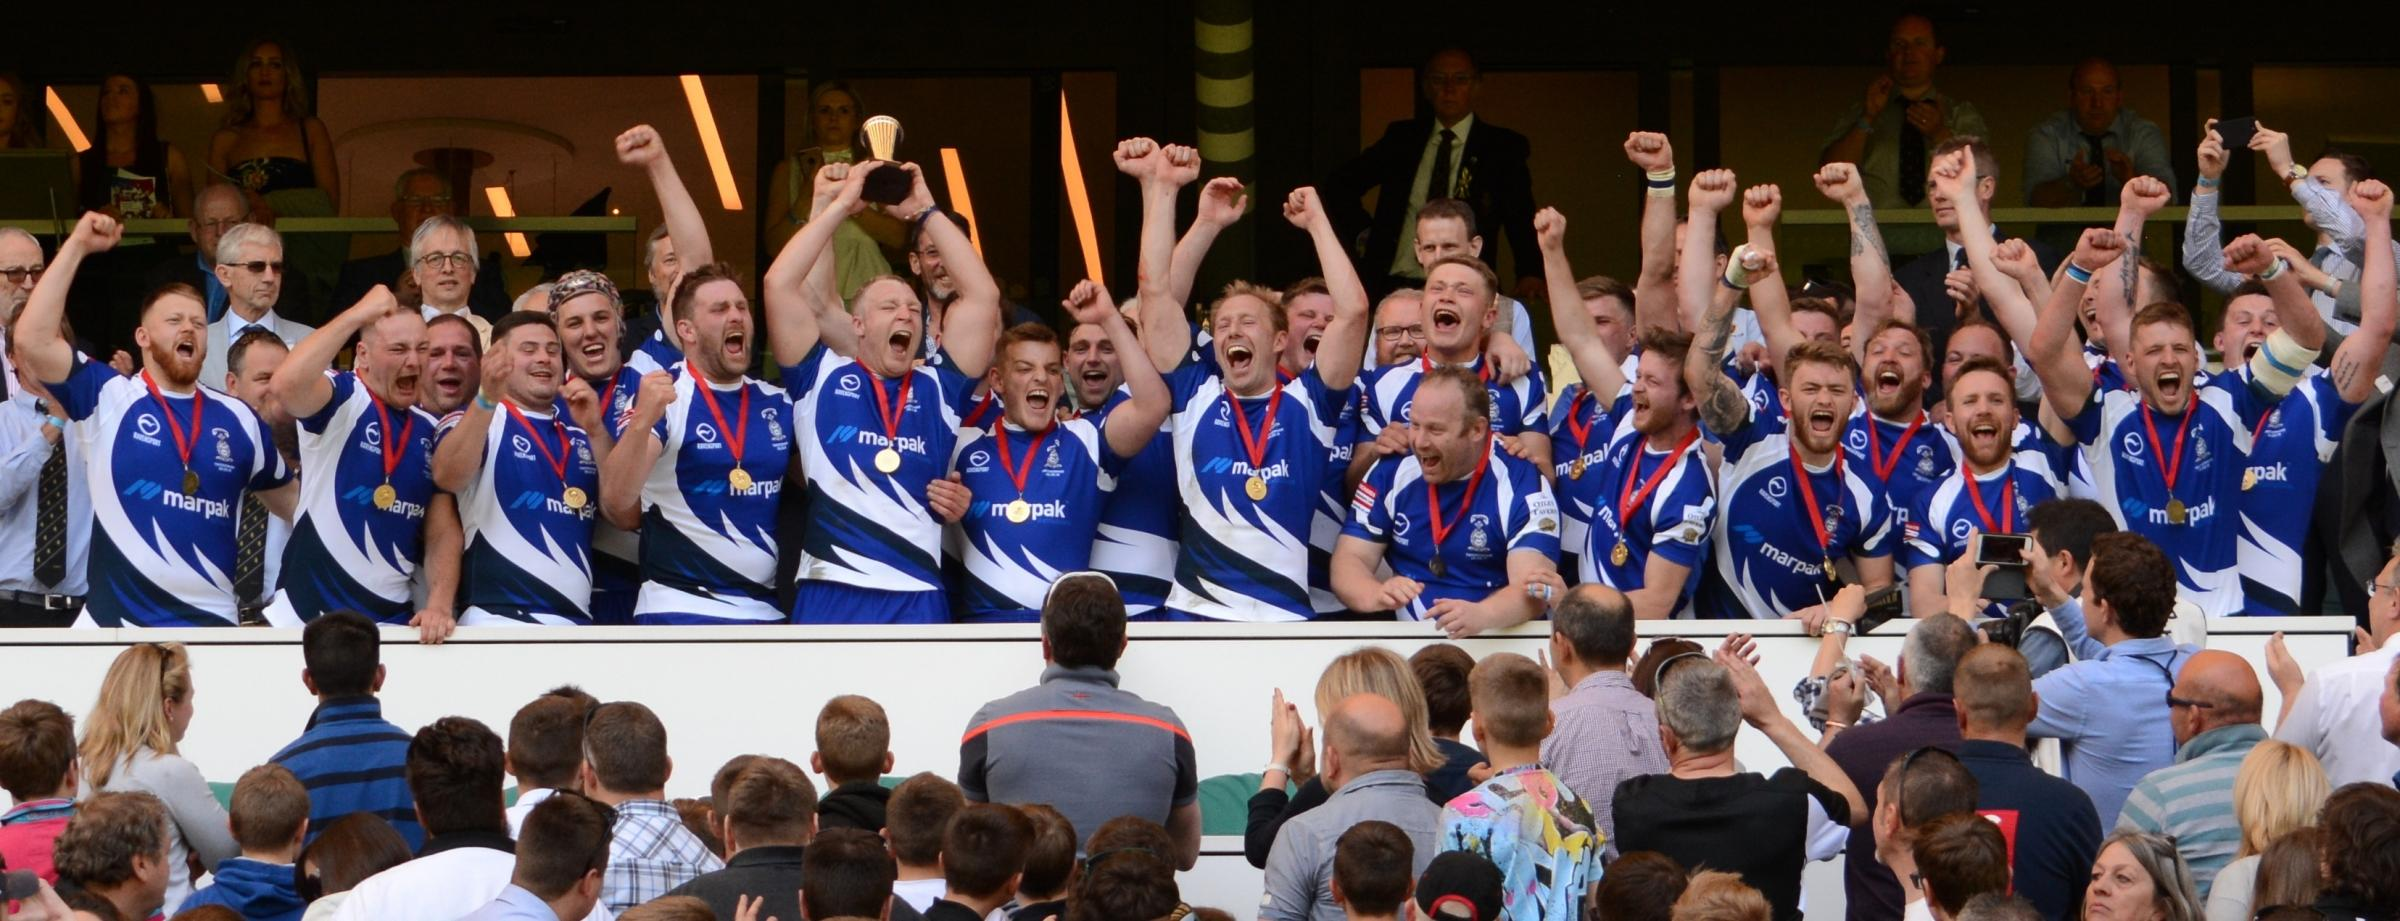 Old Otliensians RUFC will celebrate this season's successes with an open-top bus parade in Otley